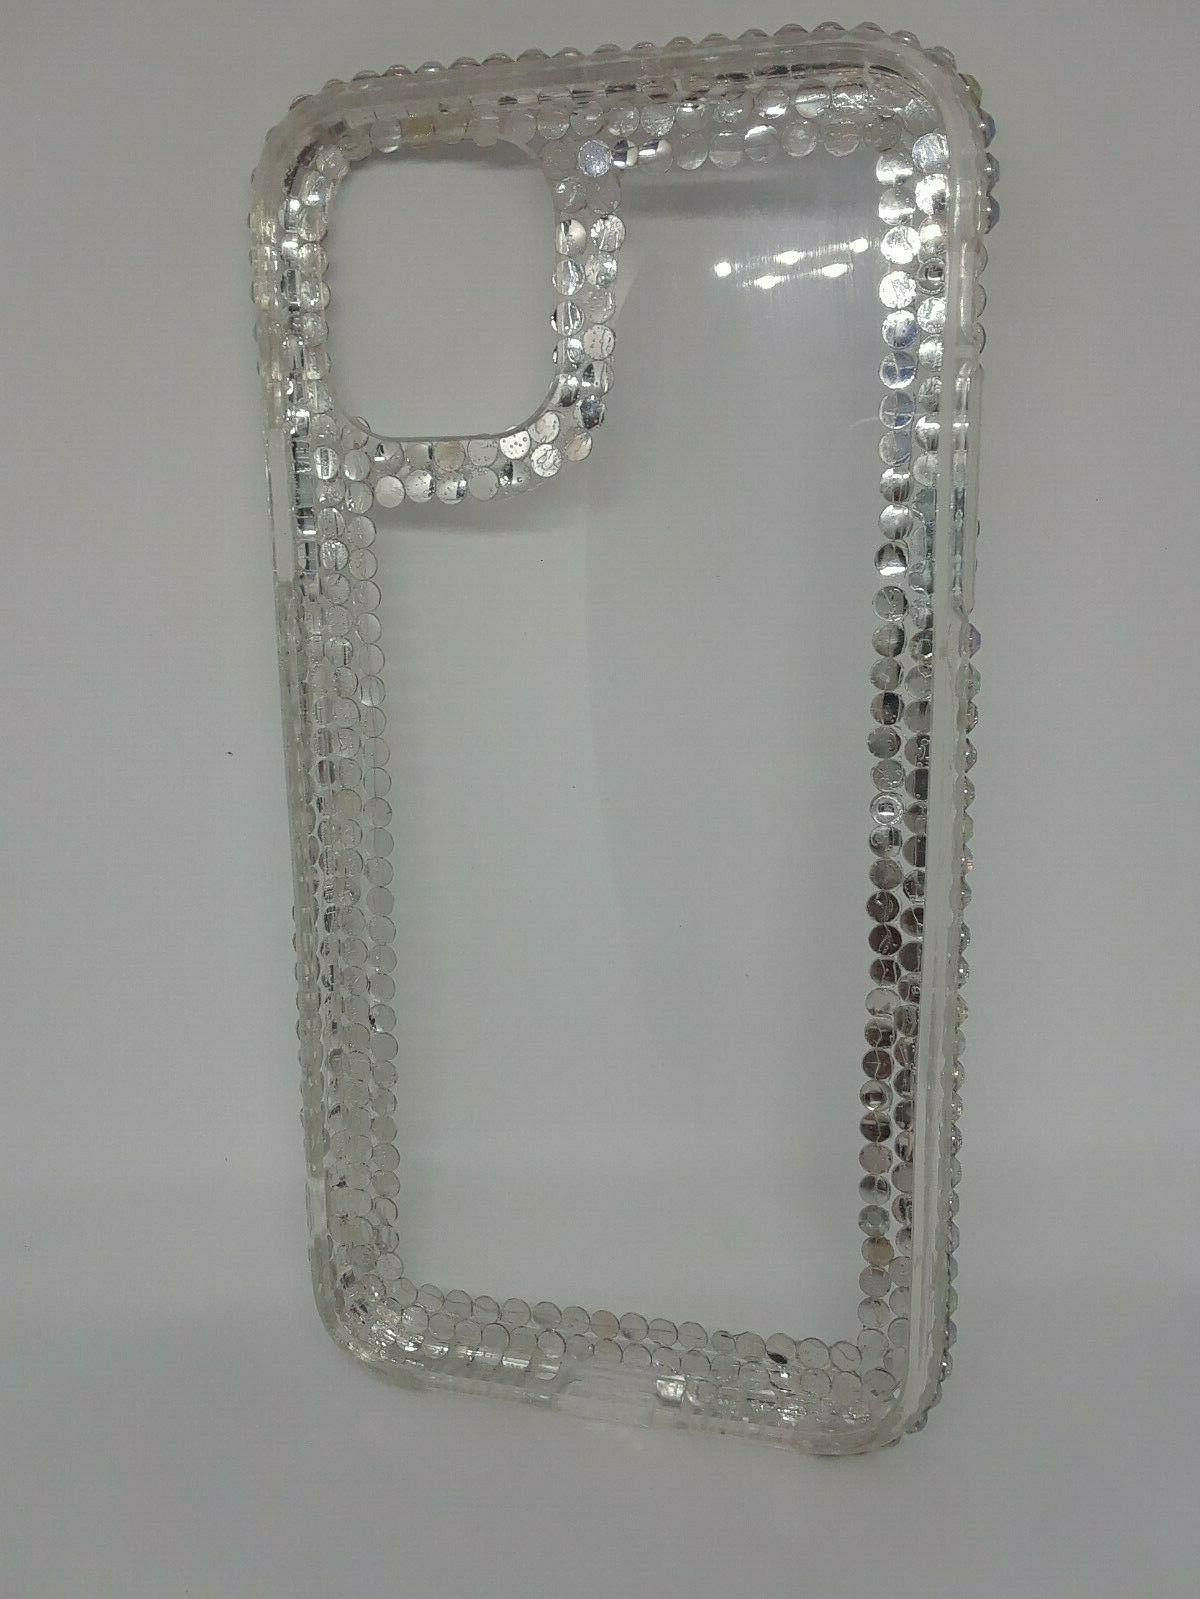 Iphone bling